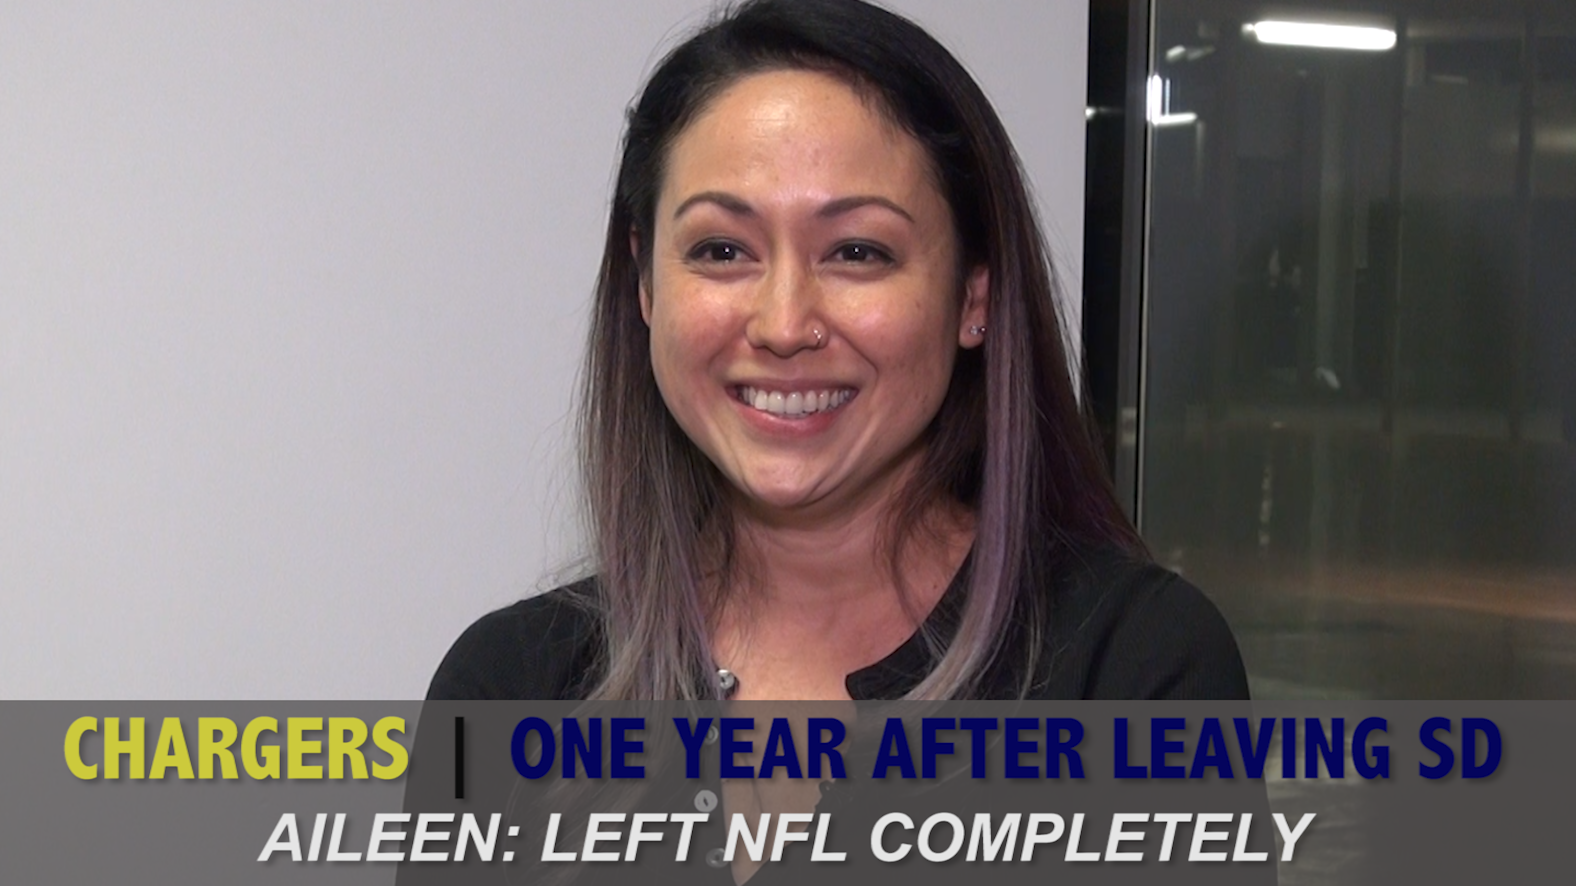 Sd-aileen-i-left-the-nfl-completely-after-the-chargers-relocated-20180110